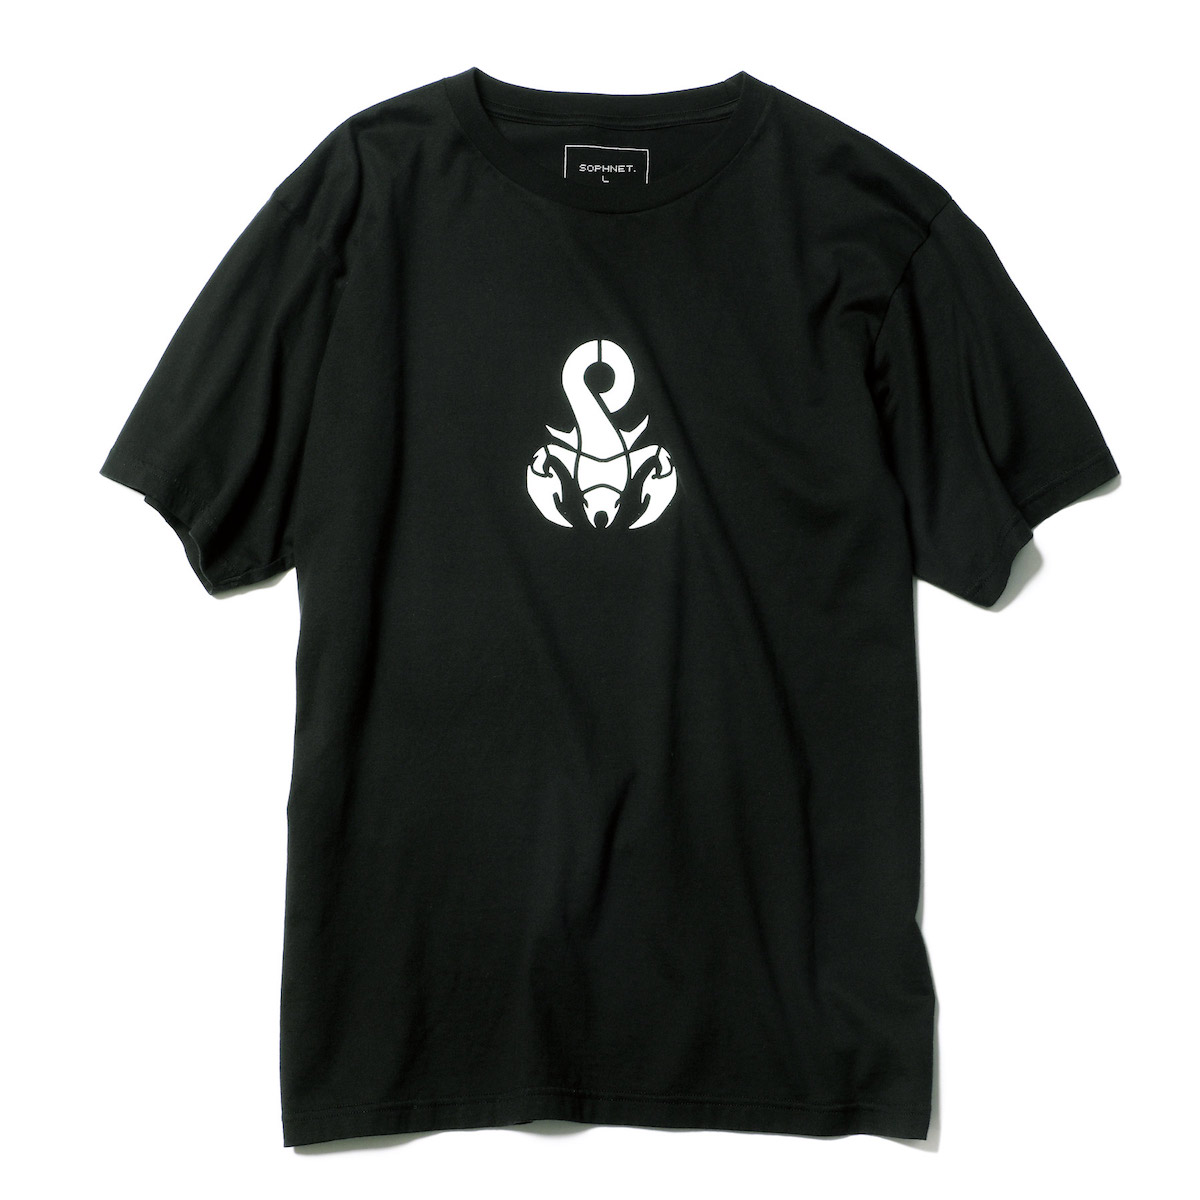 SOPHNET. / AUTHENTIC SCORPION TEE -Black